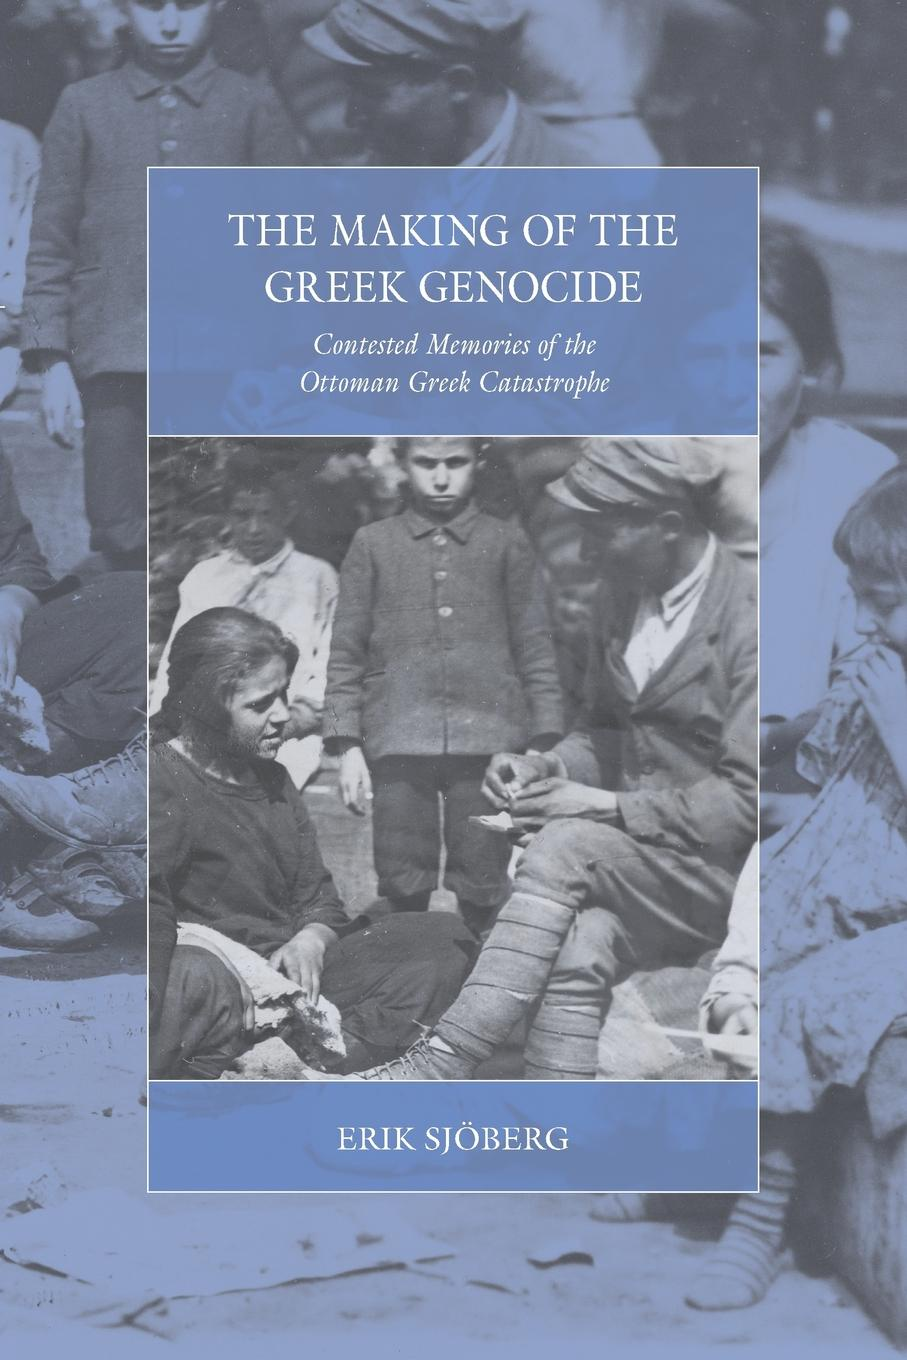 Erik Sjoberg. Making of the Greek Genocide. Contested Memories of the Ottoman Greek Catastrophe